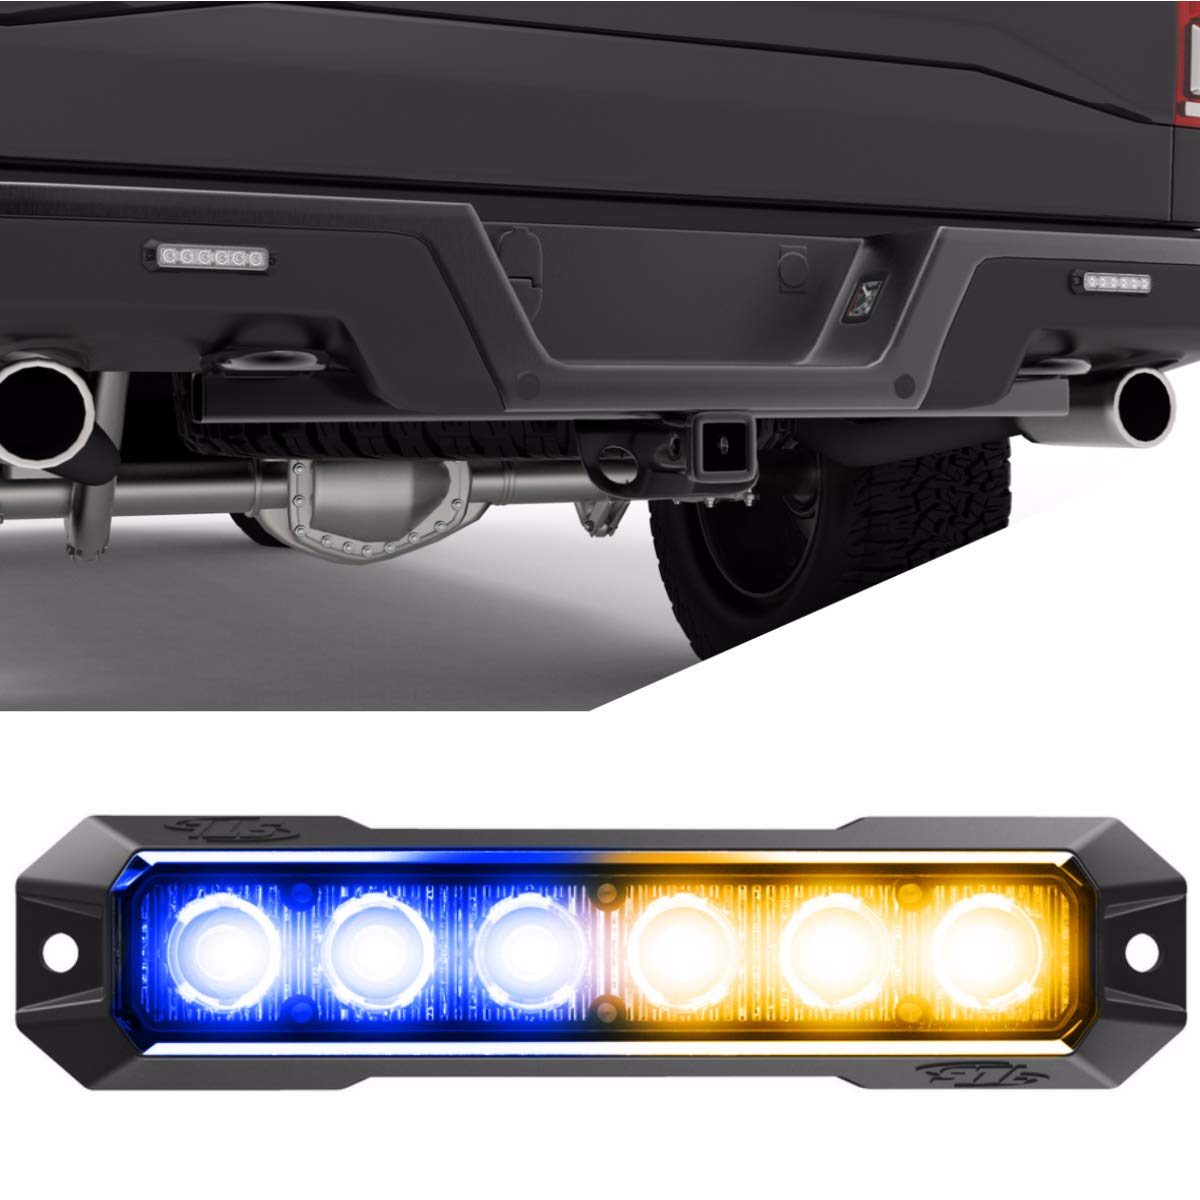 SpeedTech Lights Z-6 TIR 18W LED Strobe Light for Police Cars, Construction Trucks, Service Vehicles, Plows, Emergency Vehicles. Surface Mount Grille Flashing Hazard Beacon Light - Blue/Amber